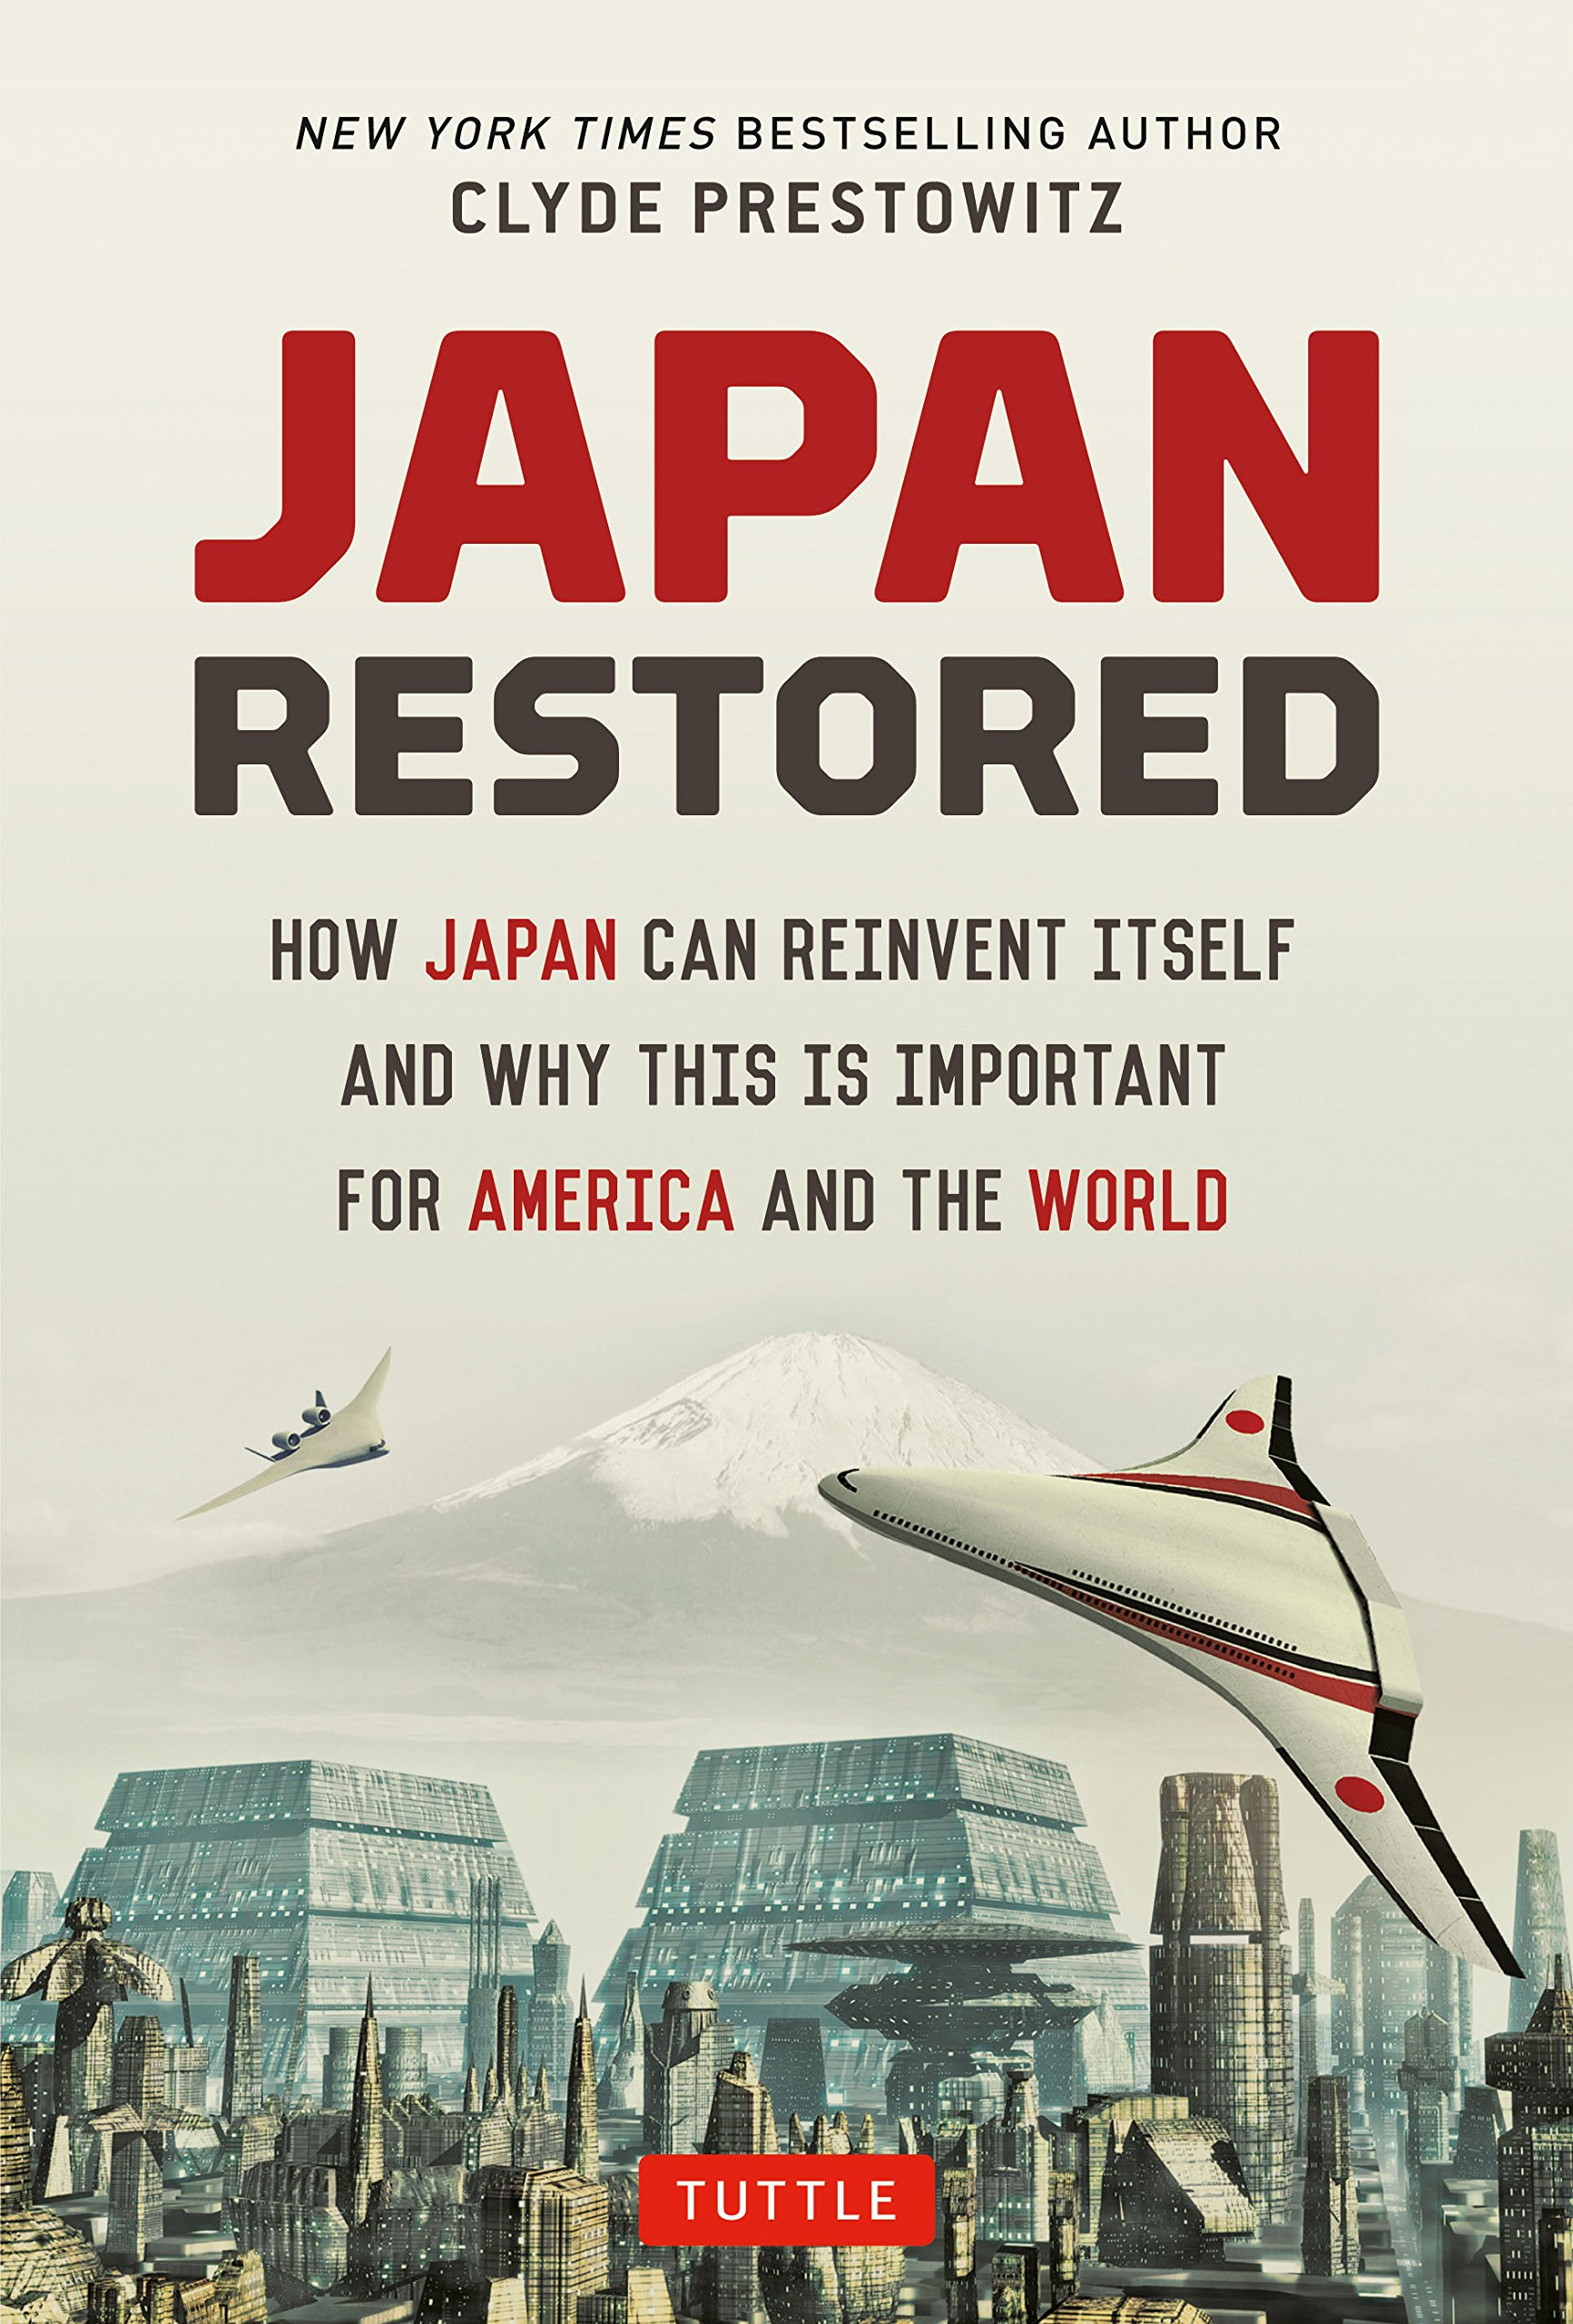 Japan Restored: How Japan Can Reinvent Itself and Why This